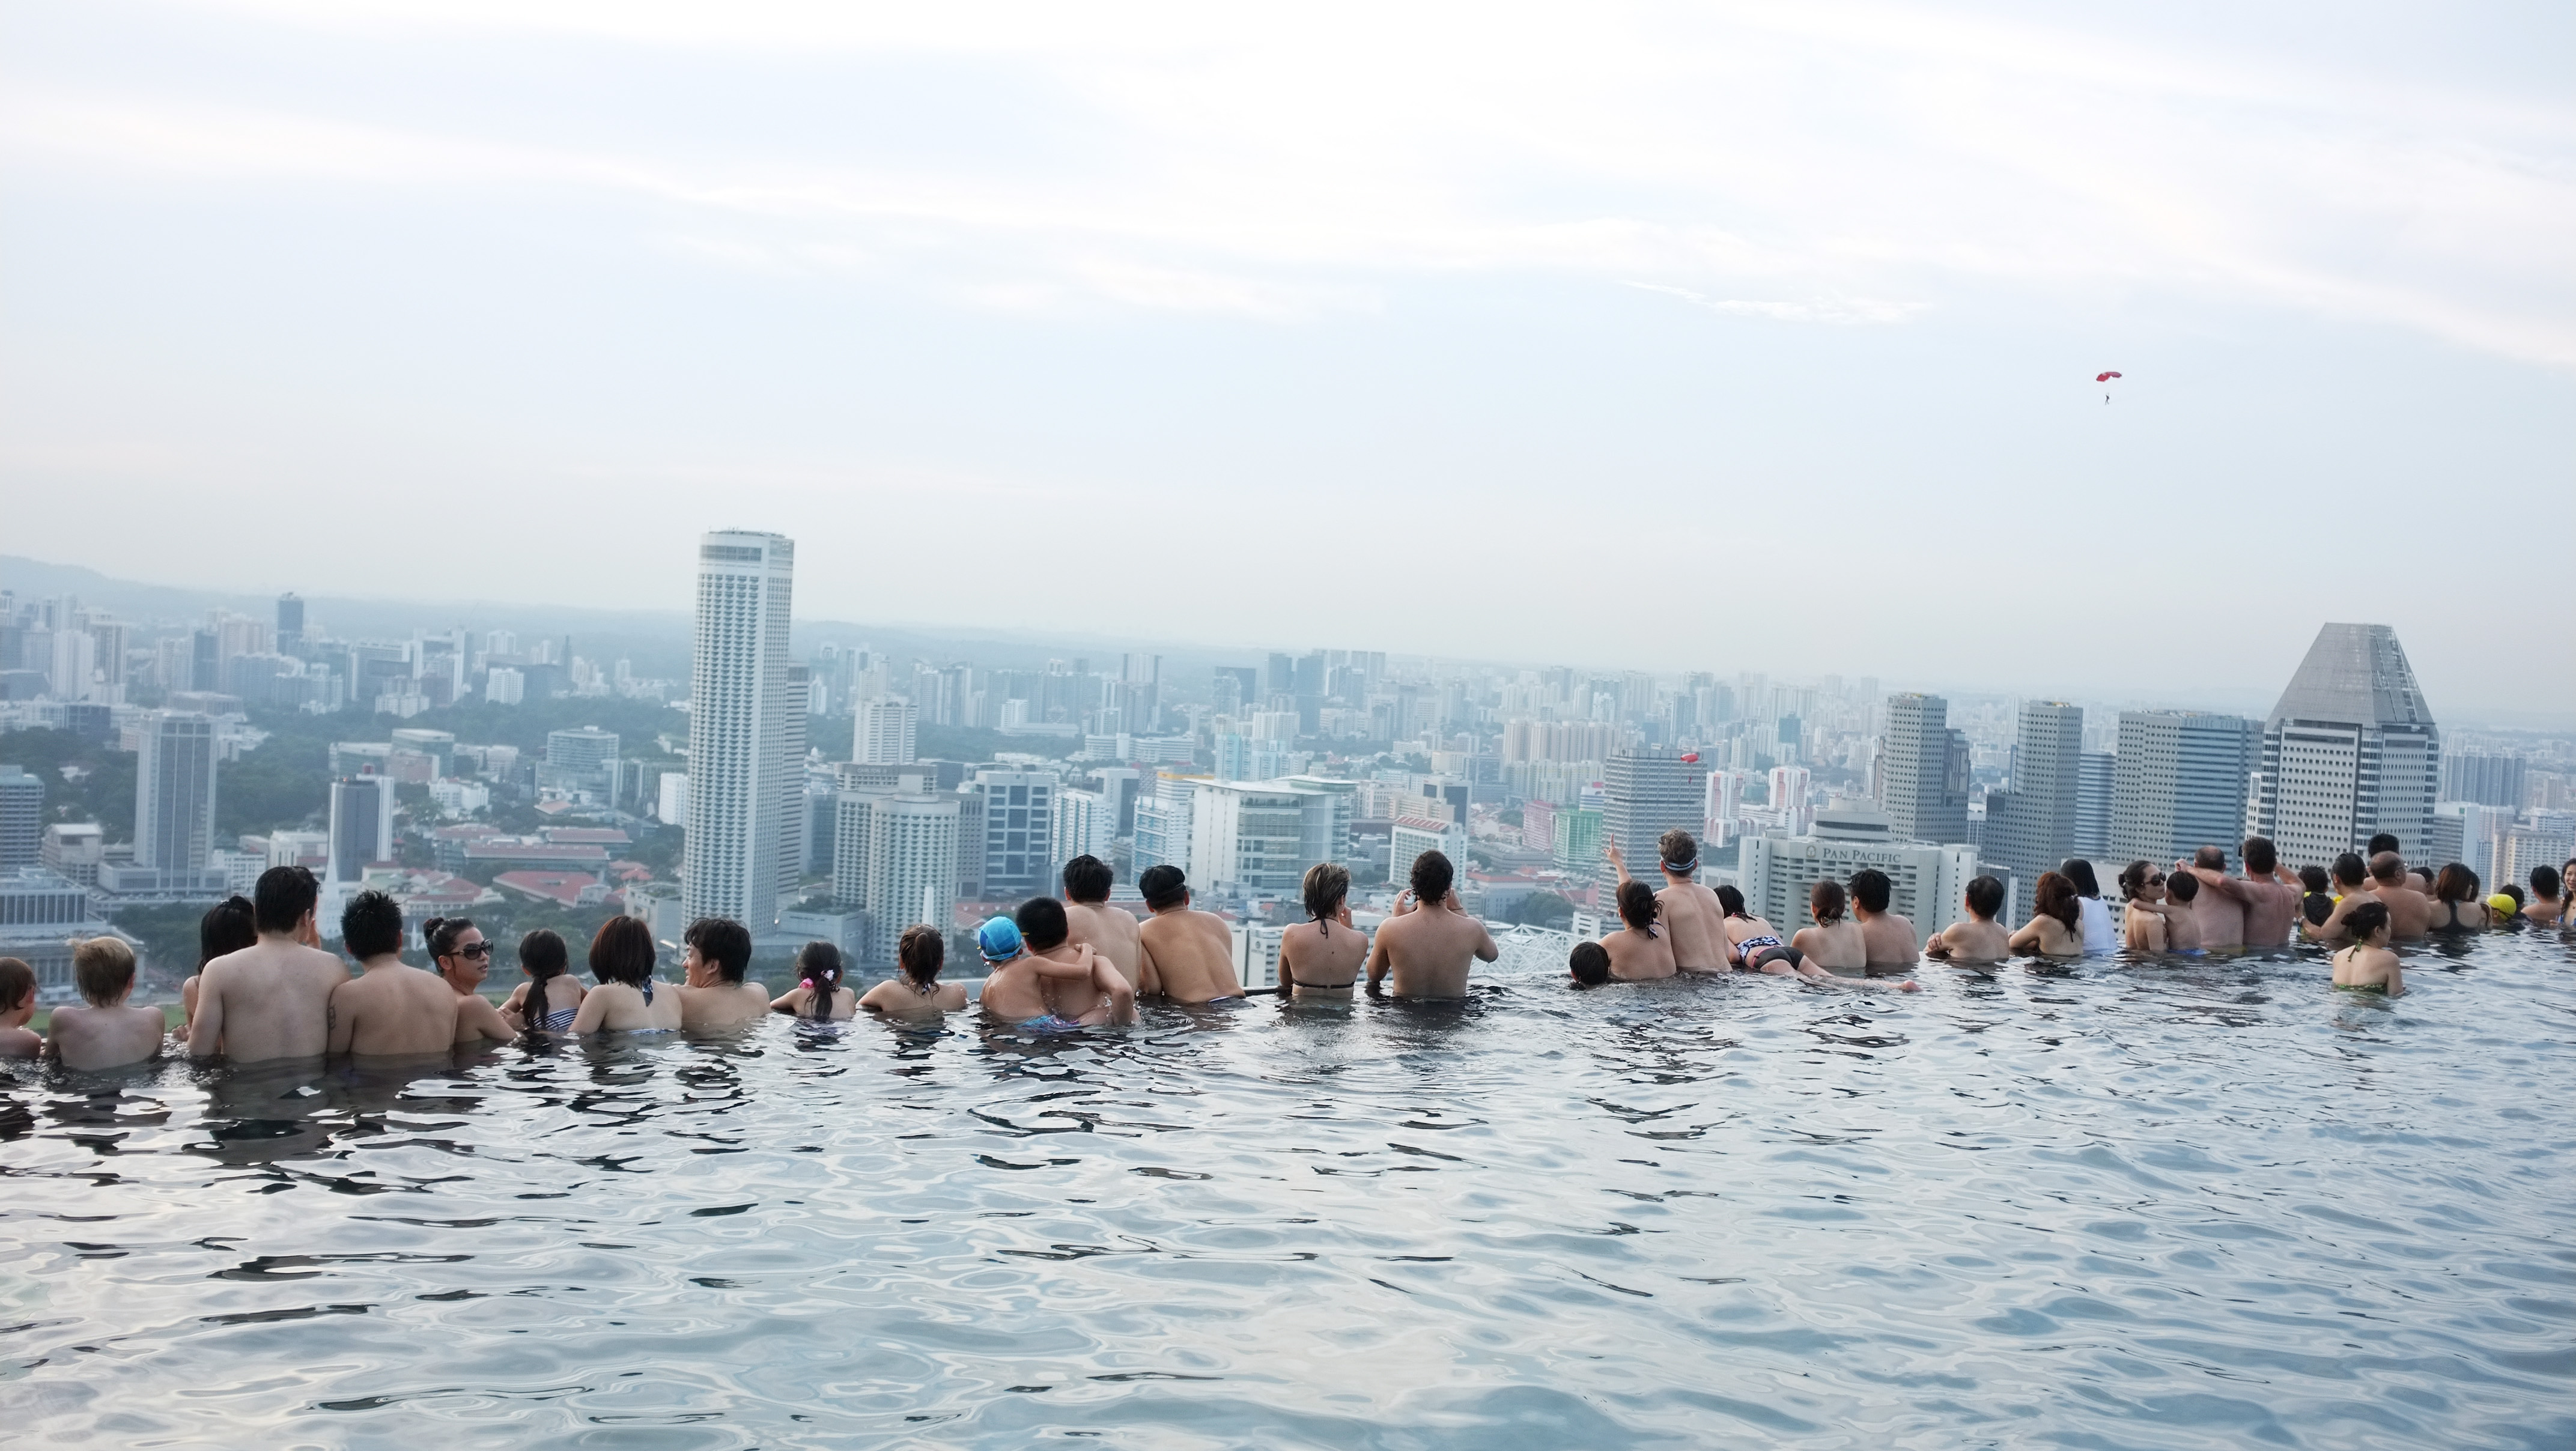 the infinity pool mbs today i asked god for the clouds